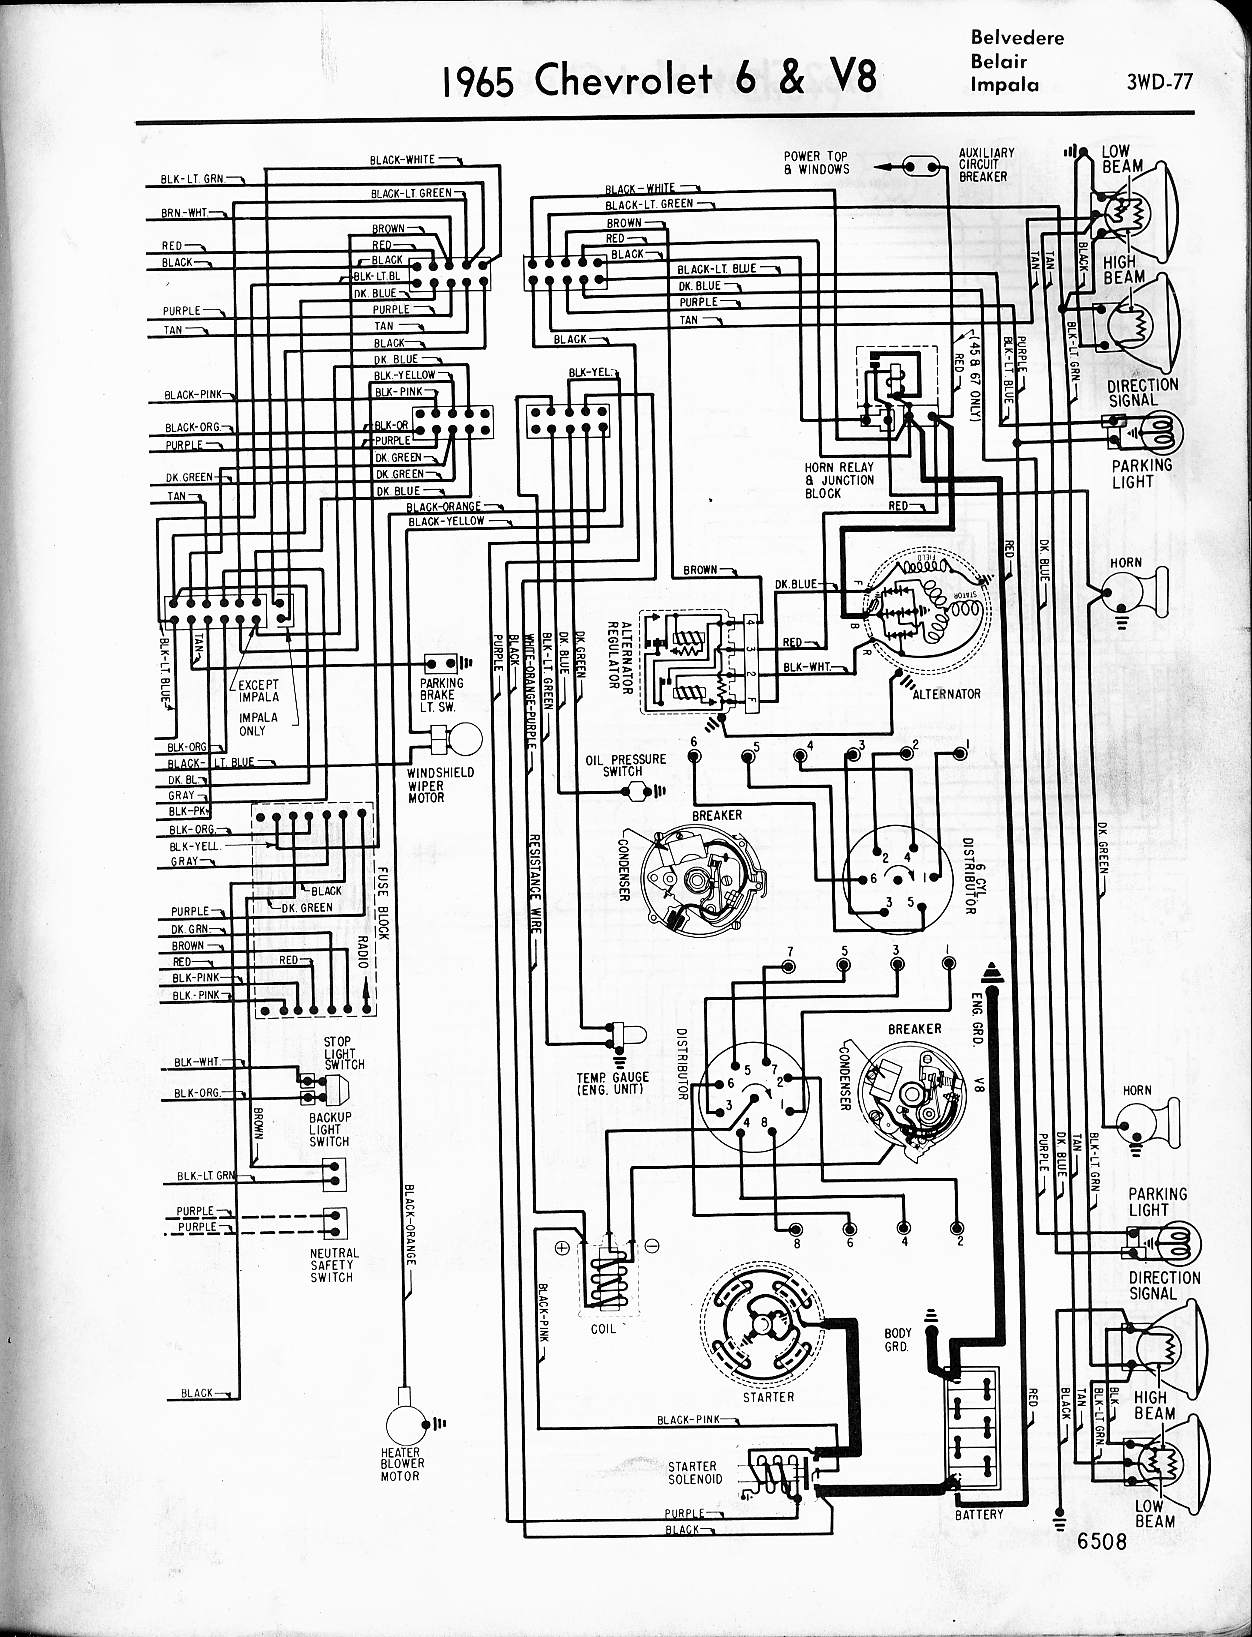 Chevy Diagrams Alternator Diagram Wiring 1965 Impalla Figure A B